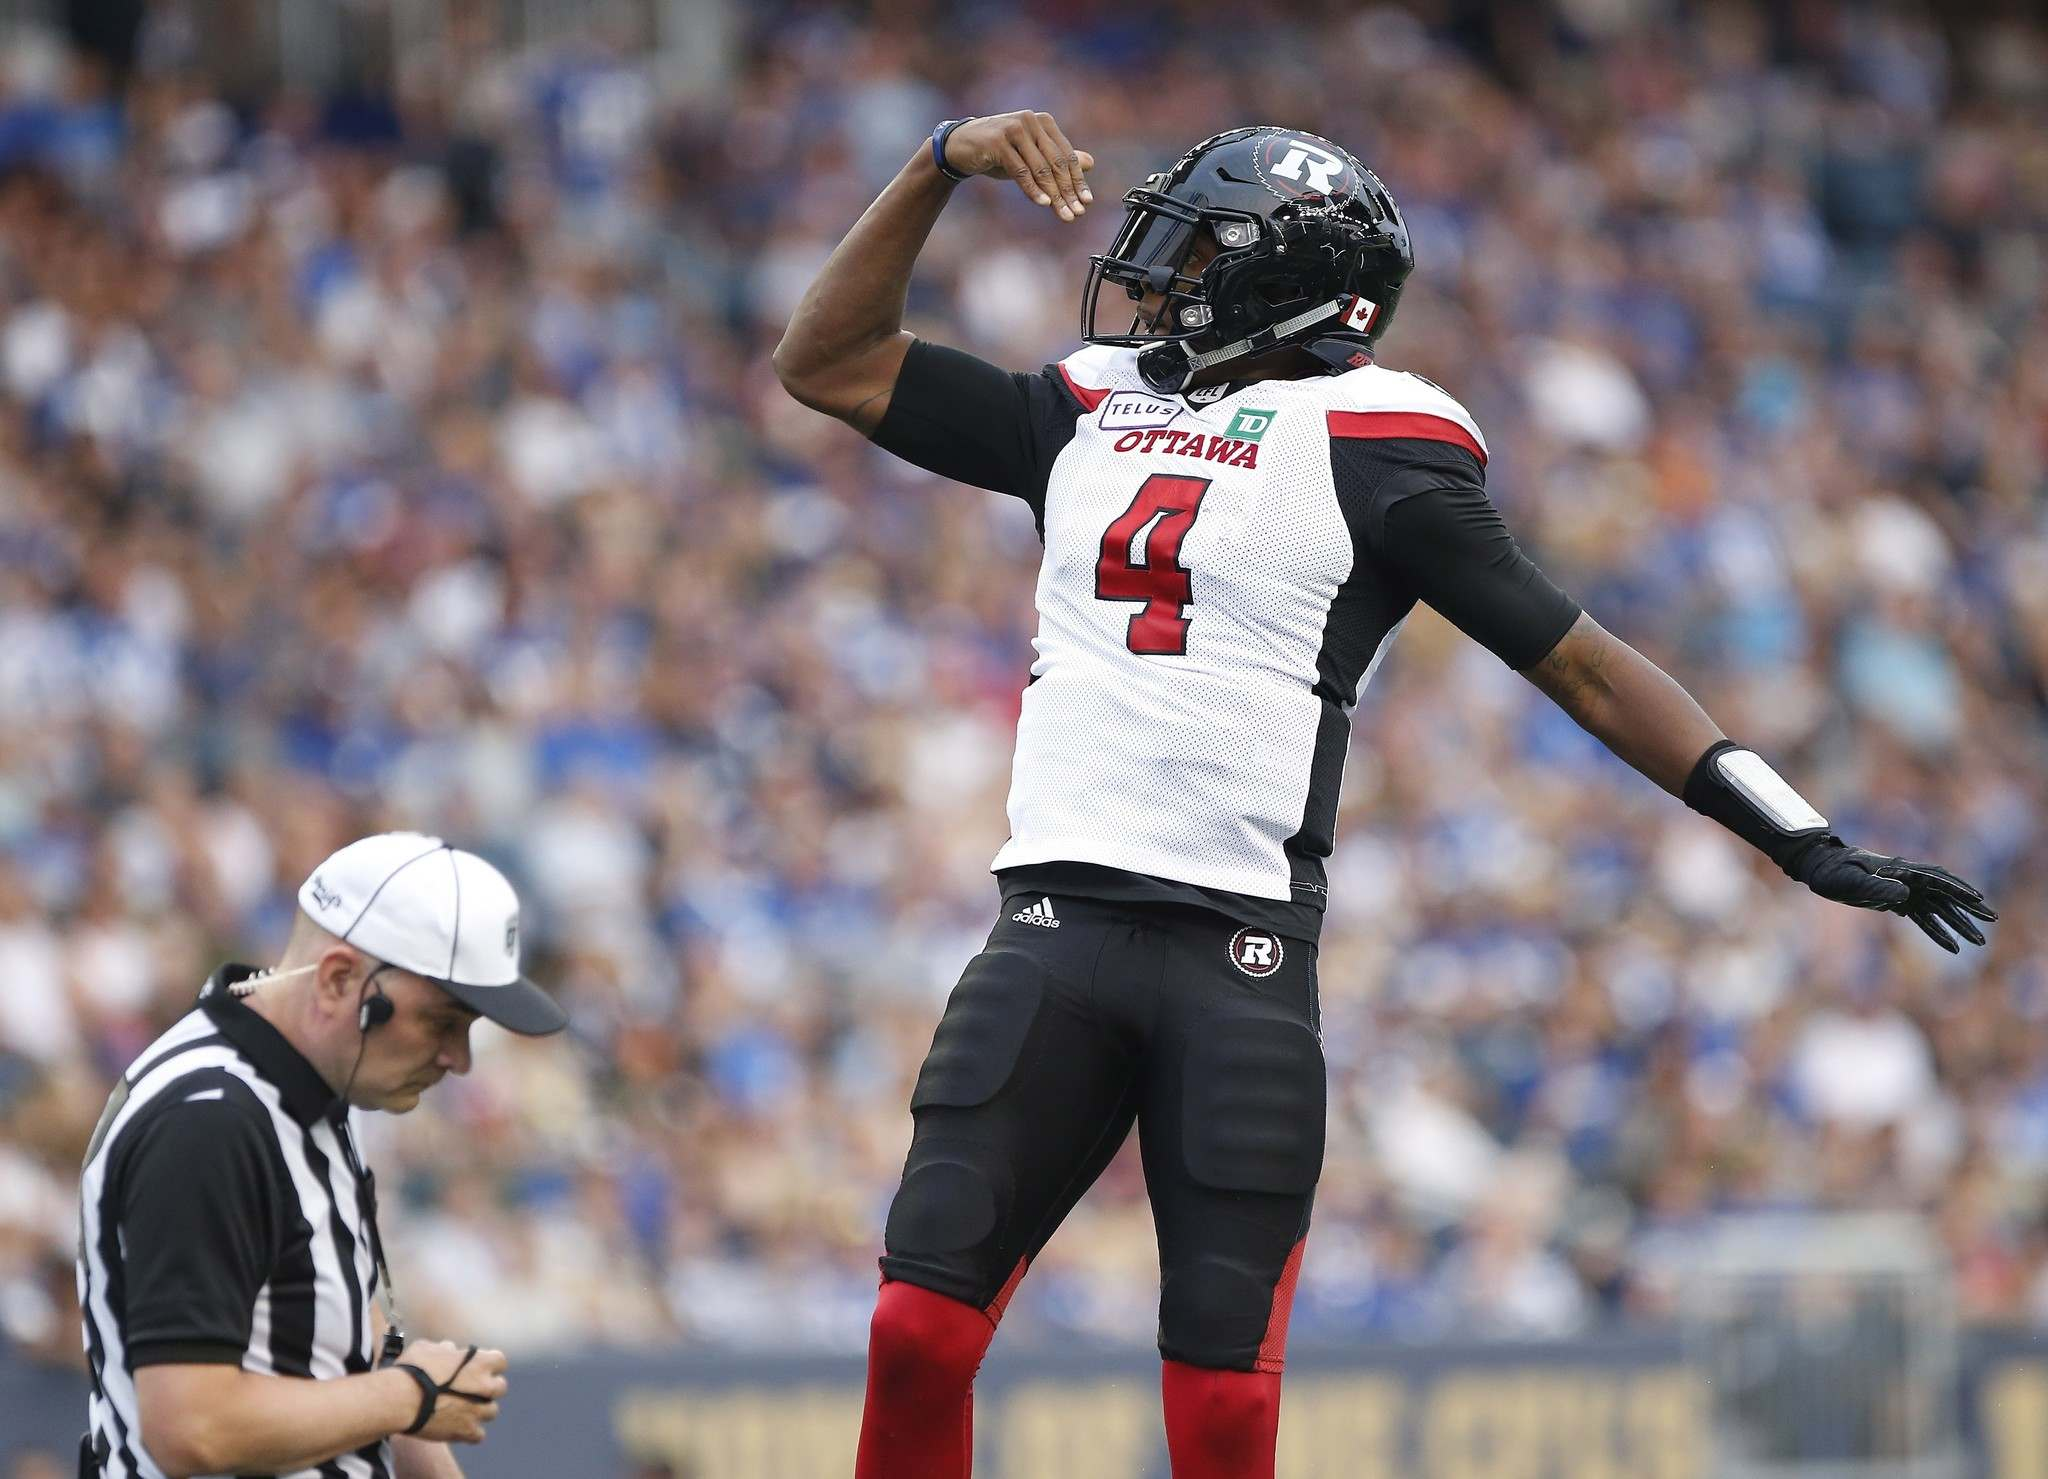 Ottawa Redblacks&#39; quarterback Dominique Davis (4) celebrates his touchdown against the Winnipeg Blue Bombers during the first half of CFL action in Winnipeg Friday, August 17, 2018. (John Woods / The Canadian Press)</p>